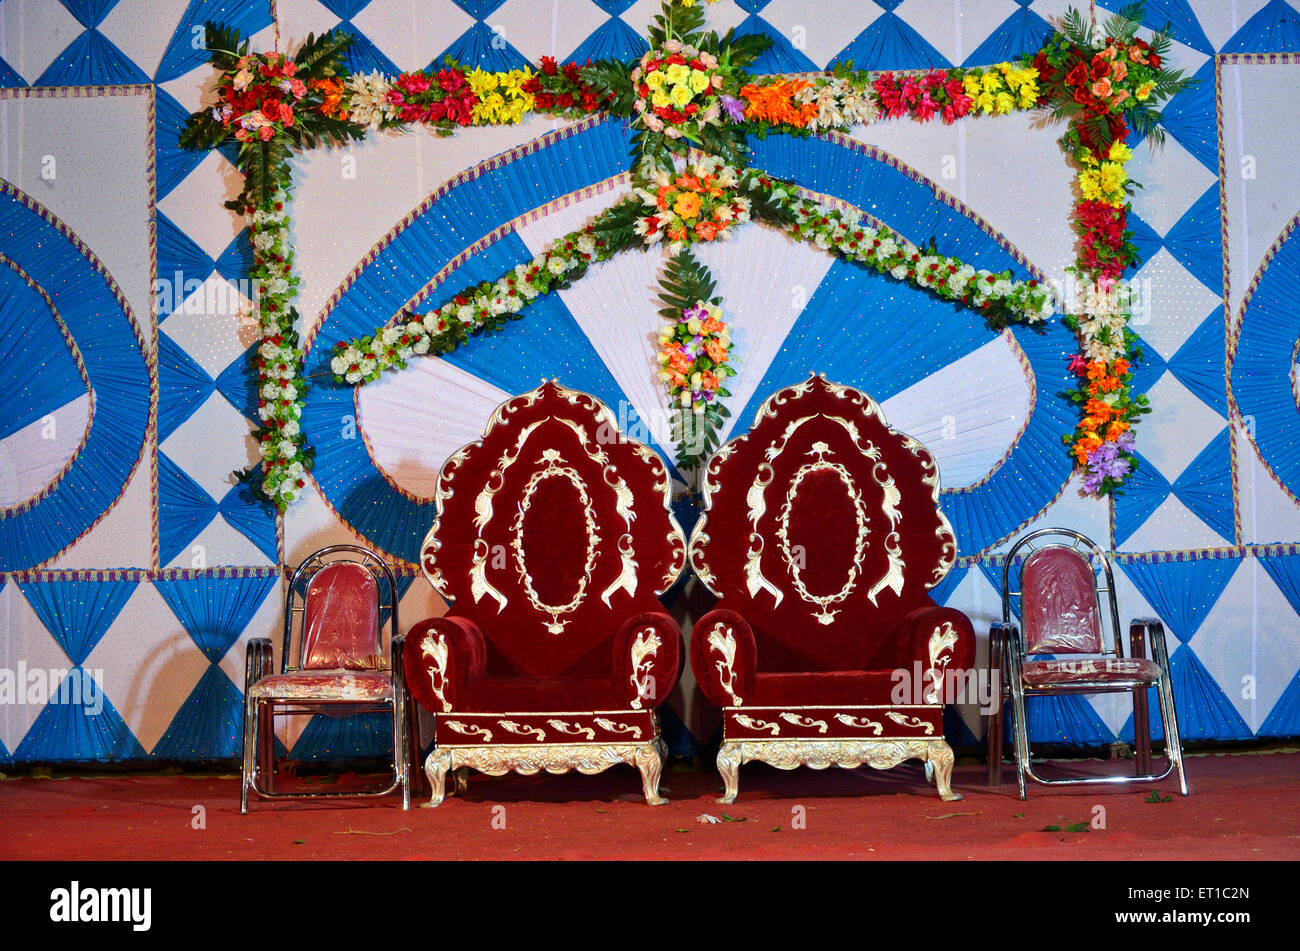 Stage decoration stock photos stage decoration stock images alamy indian marriage stage decoration sirohi rajasthan india asia stock image junglespirit Gallery